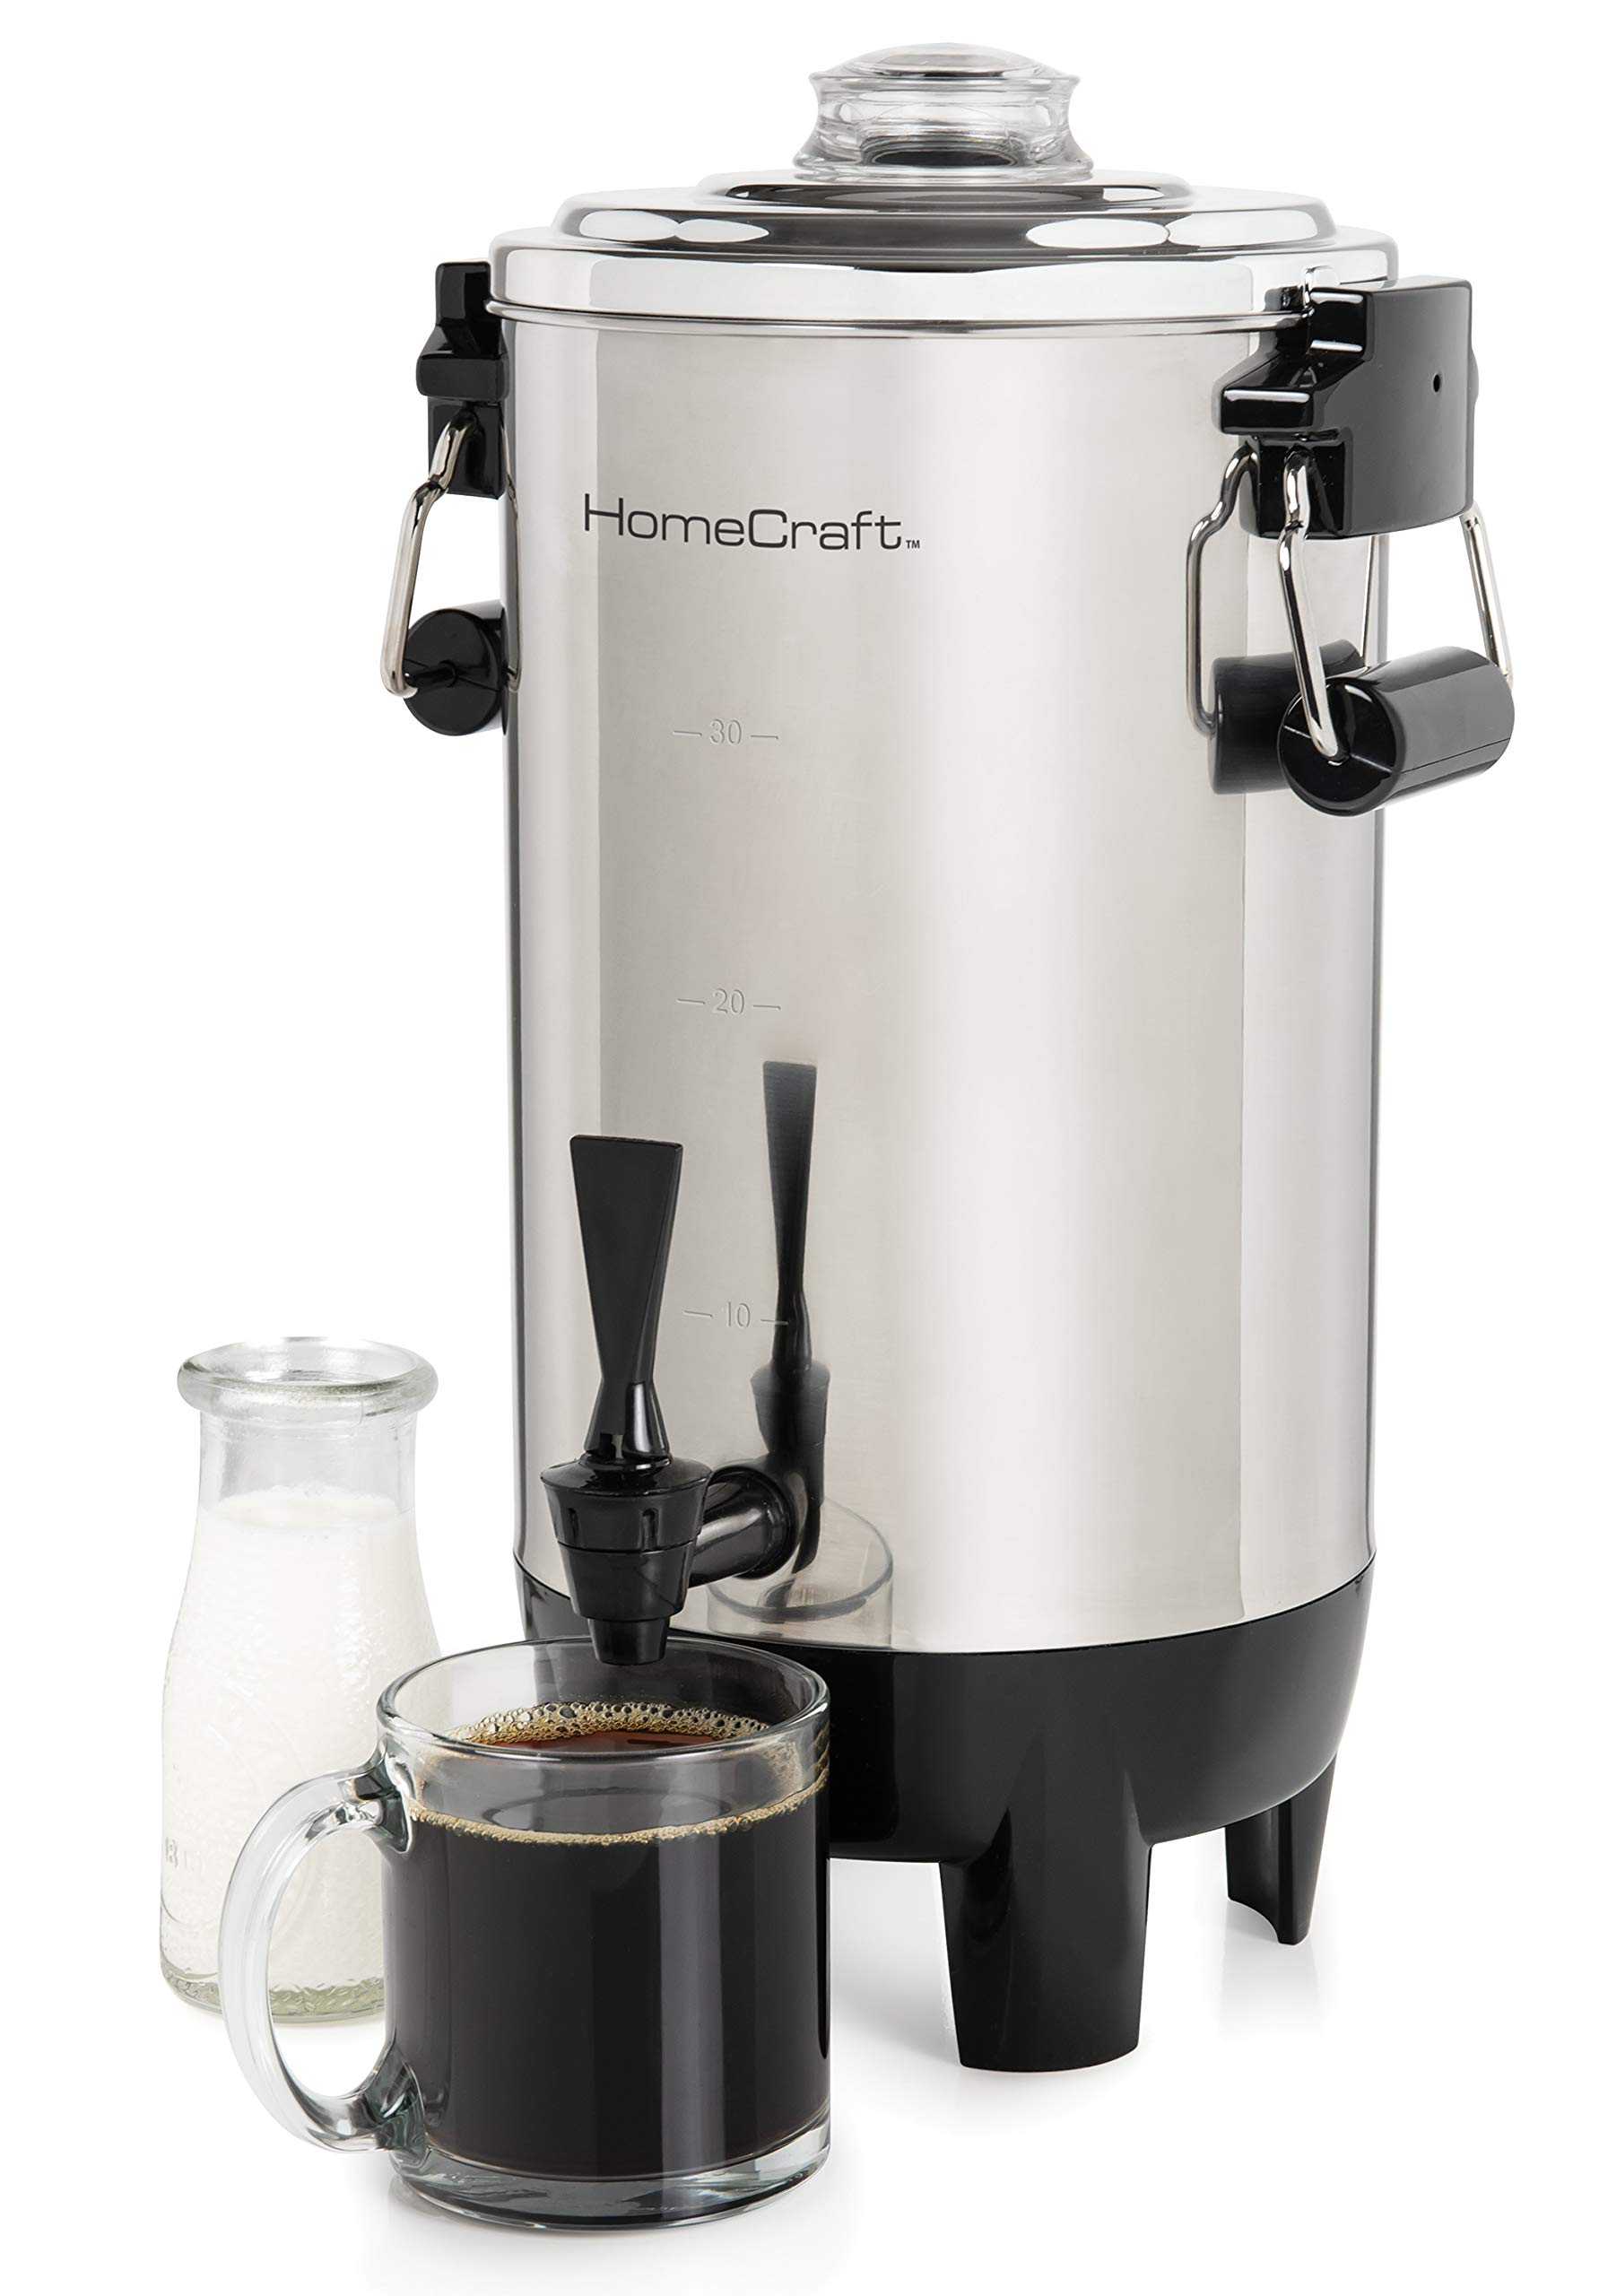 Nostalgia HomeCraft CU30SS Quick-Brewing 1000-Watt Automatic Coffee Urn, 30-Cup, Stainless Steel by Nostalgia (Image #1)